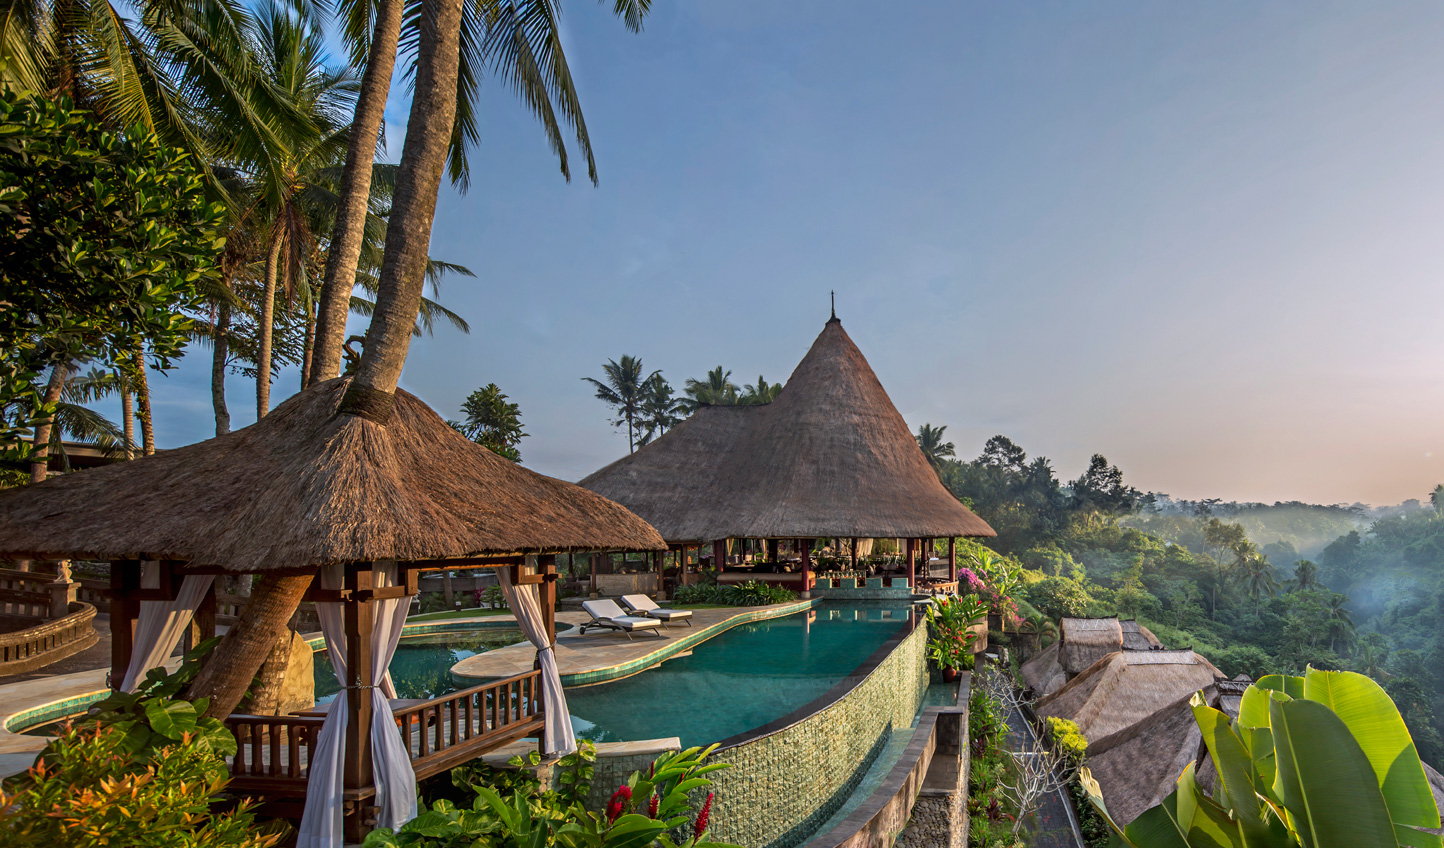 Relax into life at Viceroy Bali and soak in views over the valley from the comfort of the infinity pool